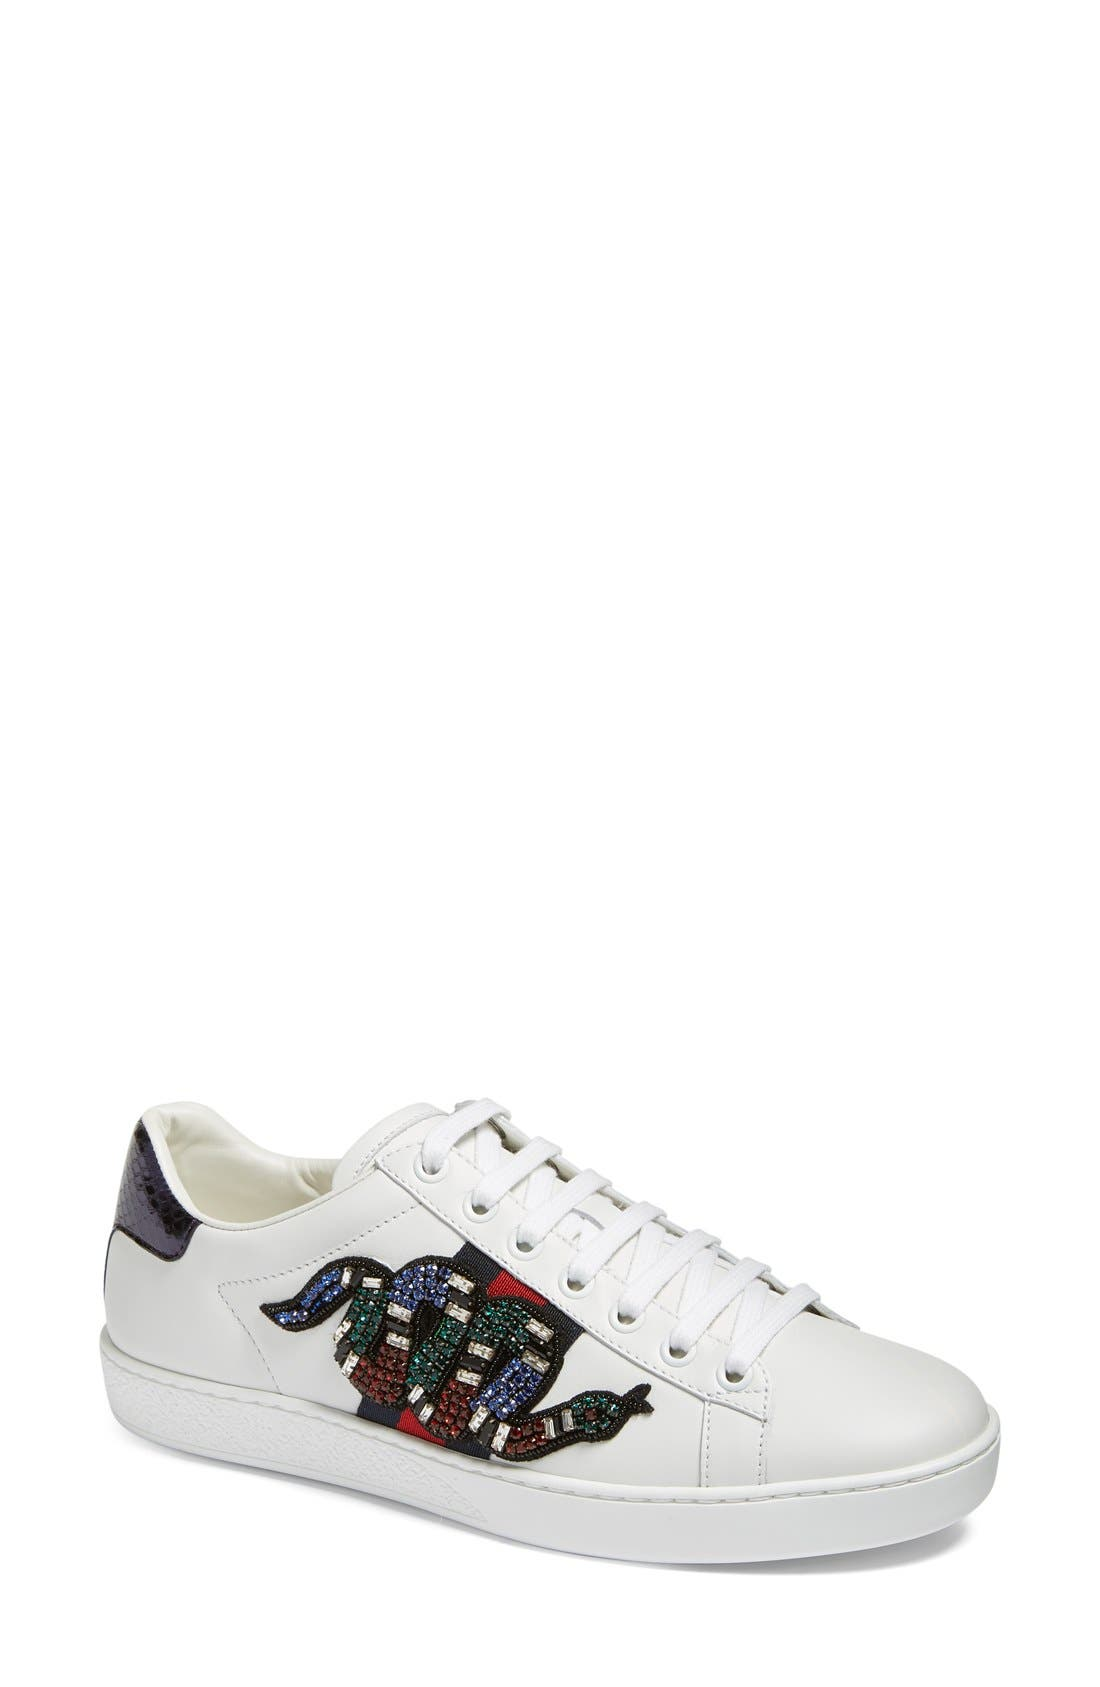 New Age Snake Embellished Sneaker,                             Main thumbnail 1, color,                             White Multi